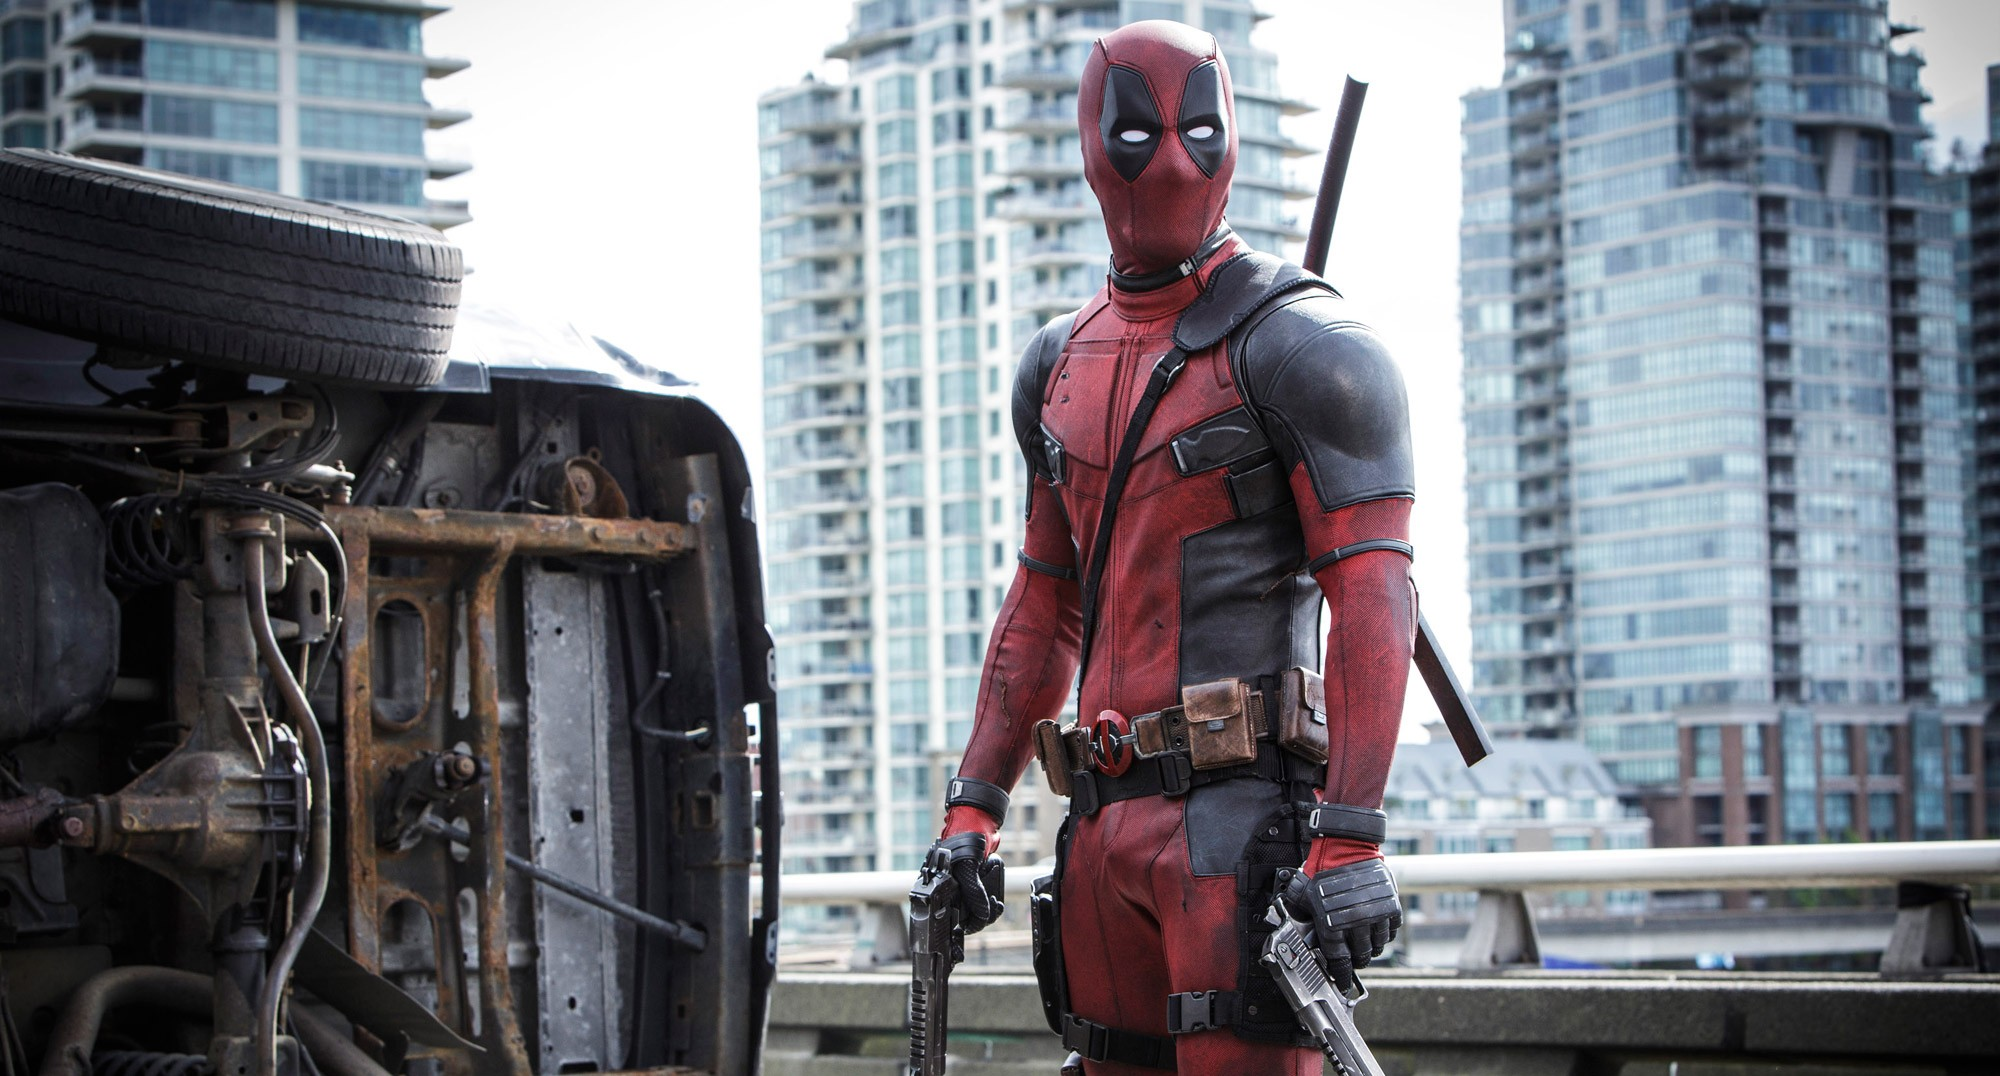 'Deadpool' is Another Monotonous Origin Story With Added Vulgarity